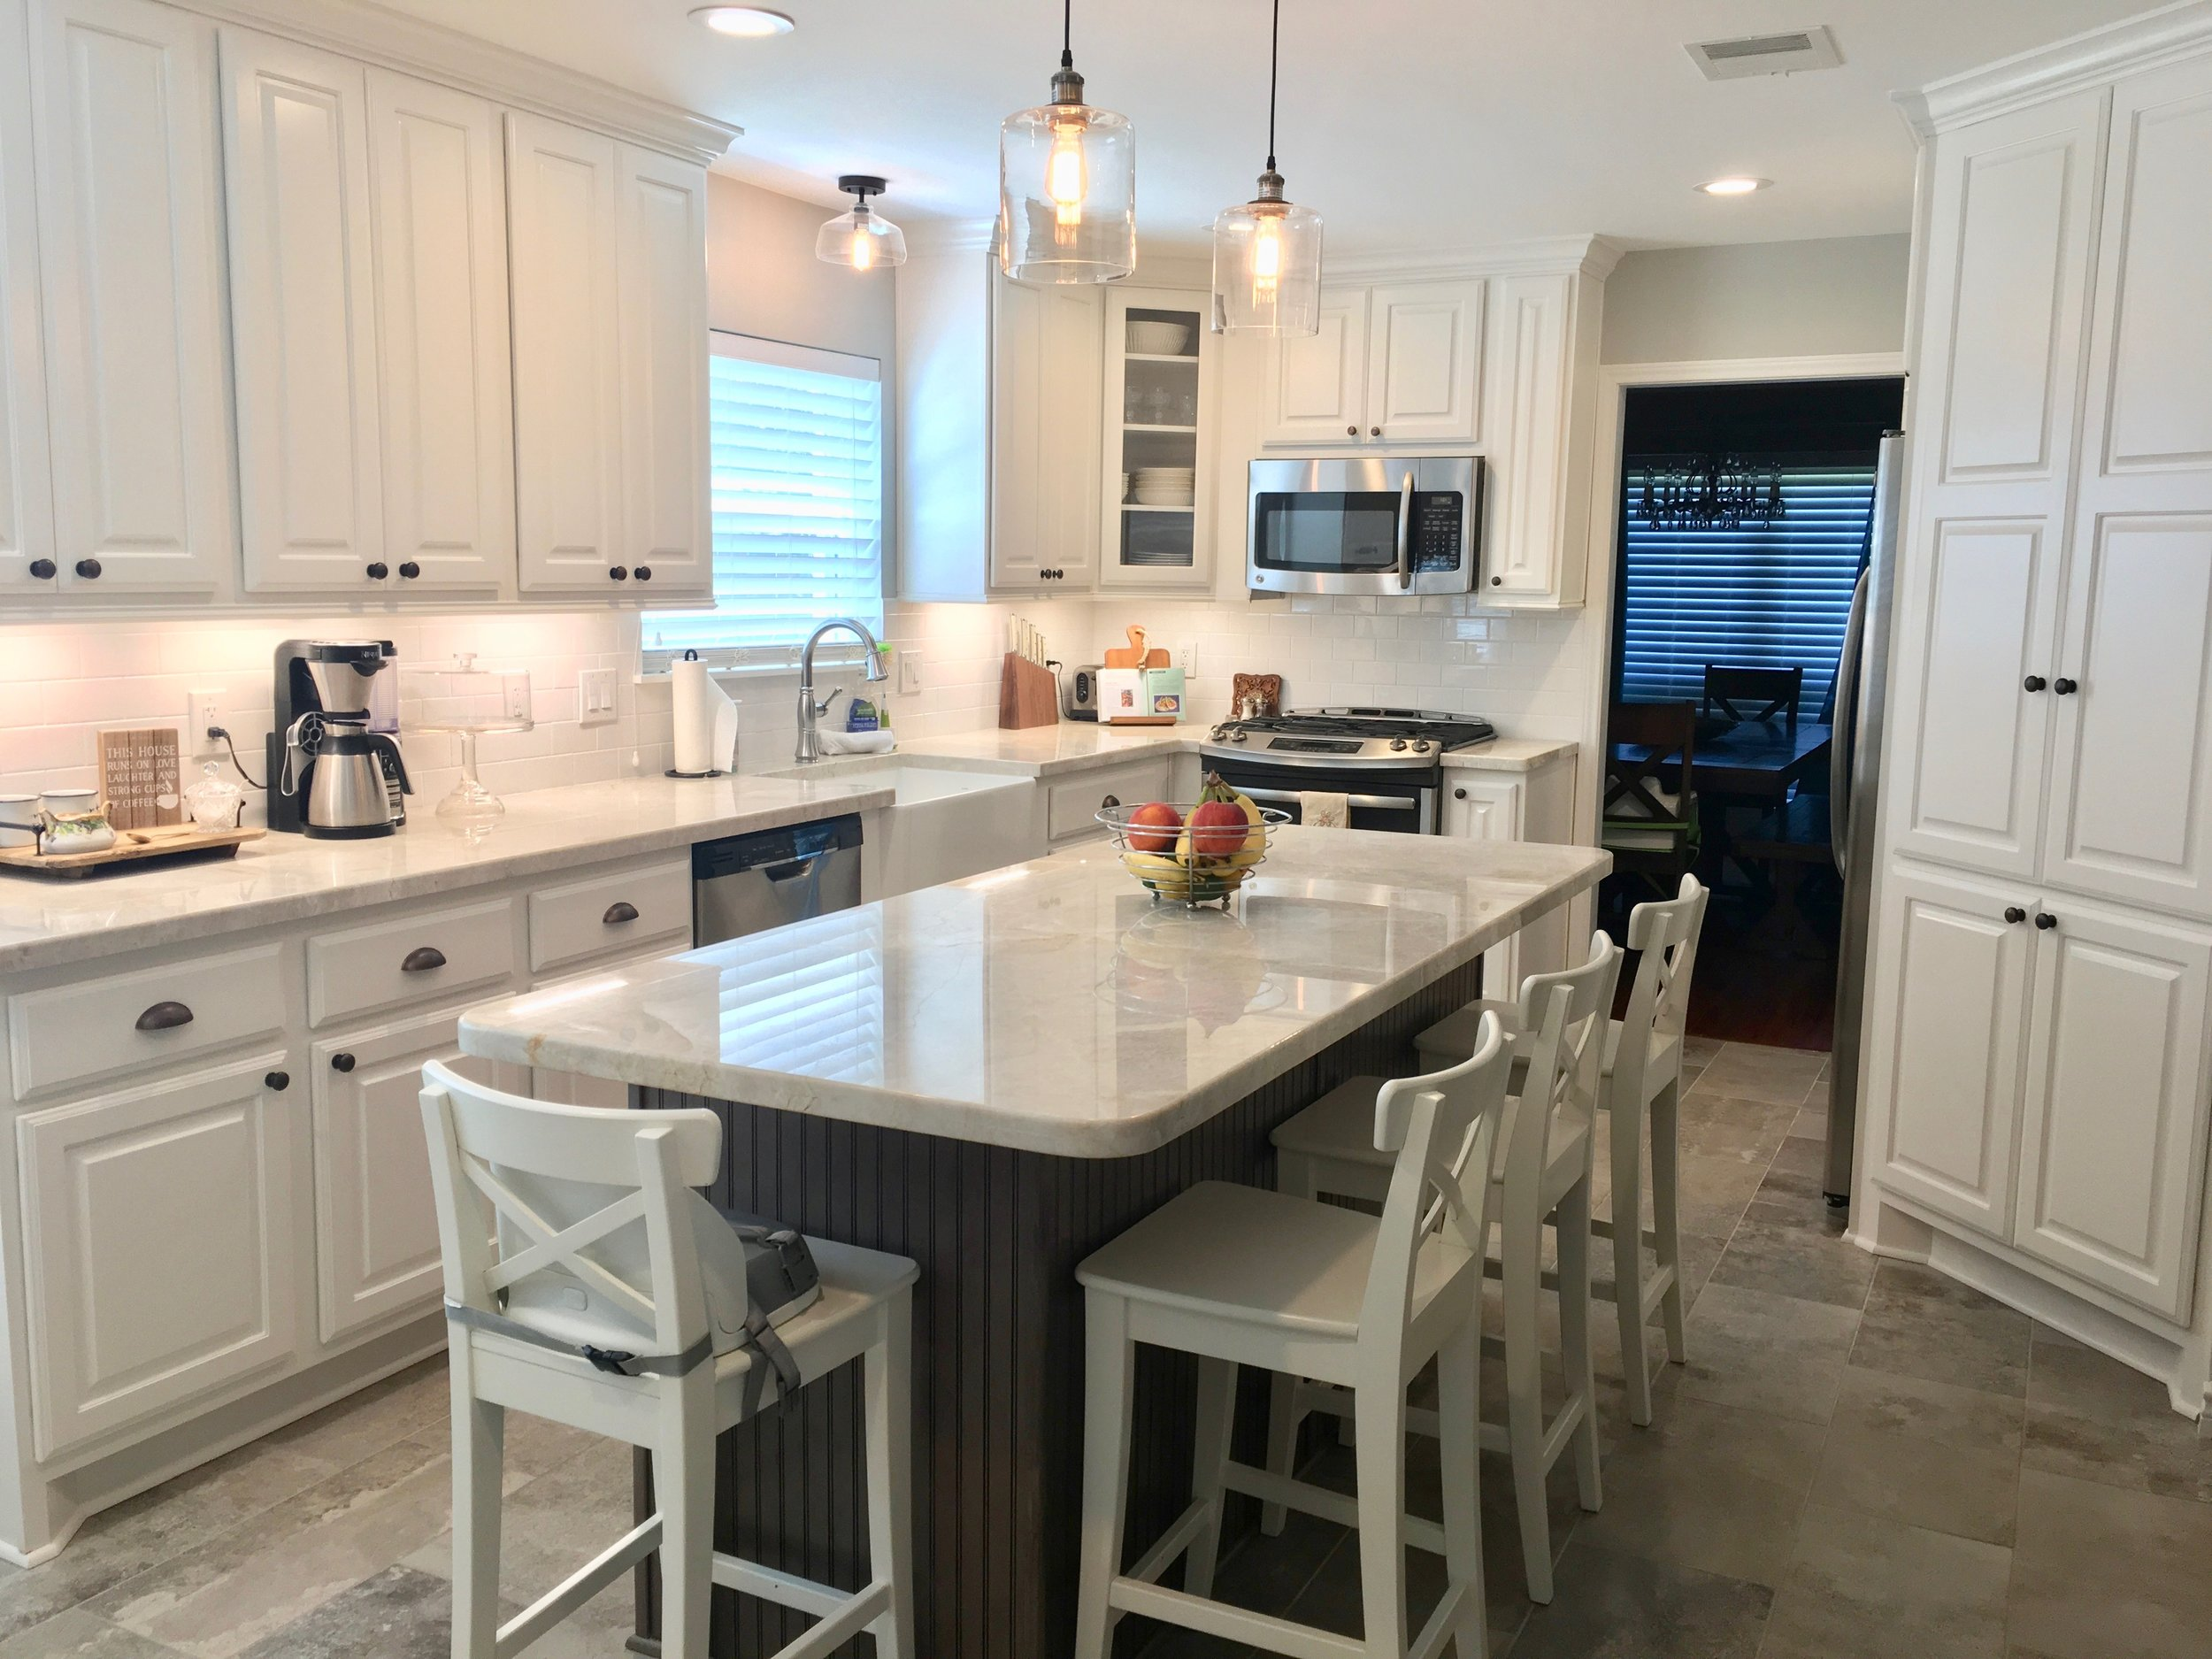 After - Kitchen Remodel done with tips from Designed in a Click consultation